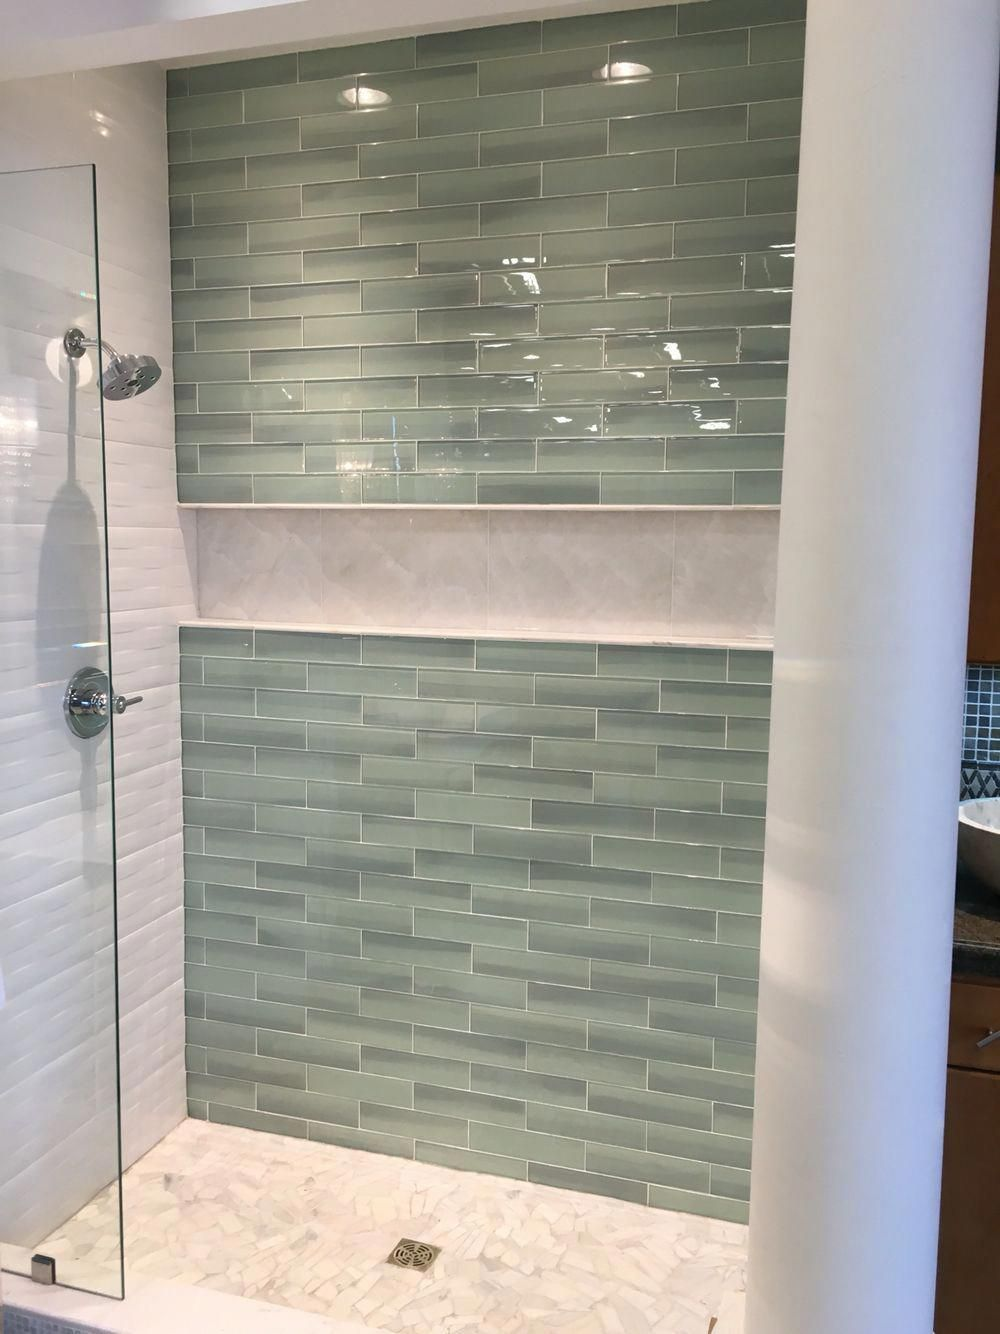 Pin On Remodeling Tips